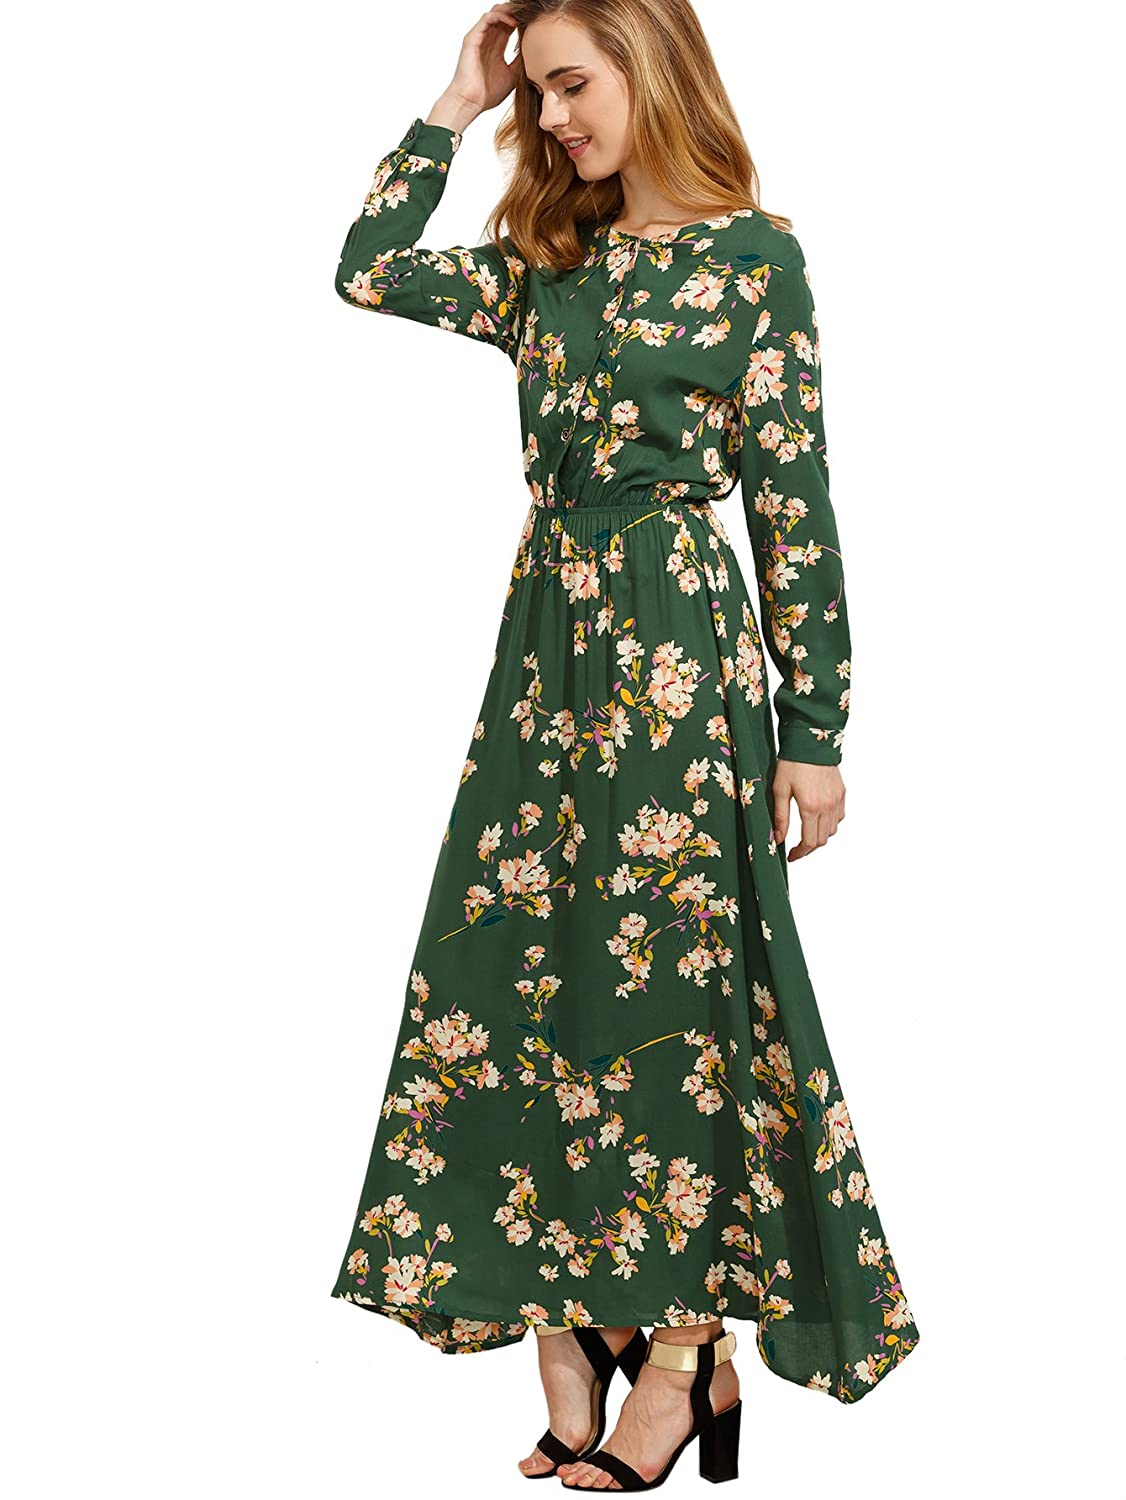 1930s Art Deco Plus Size Dresses | Tea Dresses, Party Dresses Floerns Womens Long Sleeve Floral Print Button Casual Maxi Dress $39.99 AT vintagedancer.com